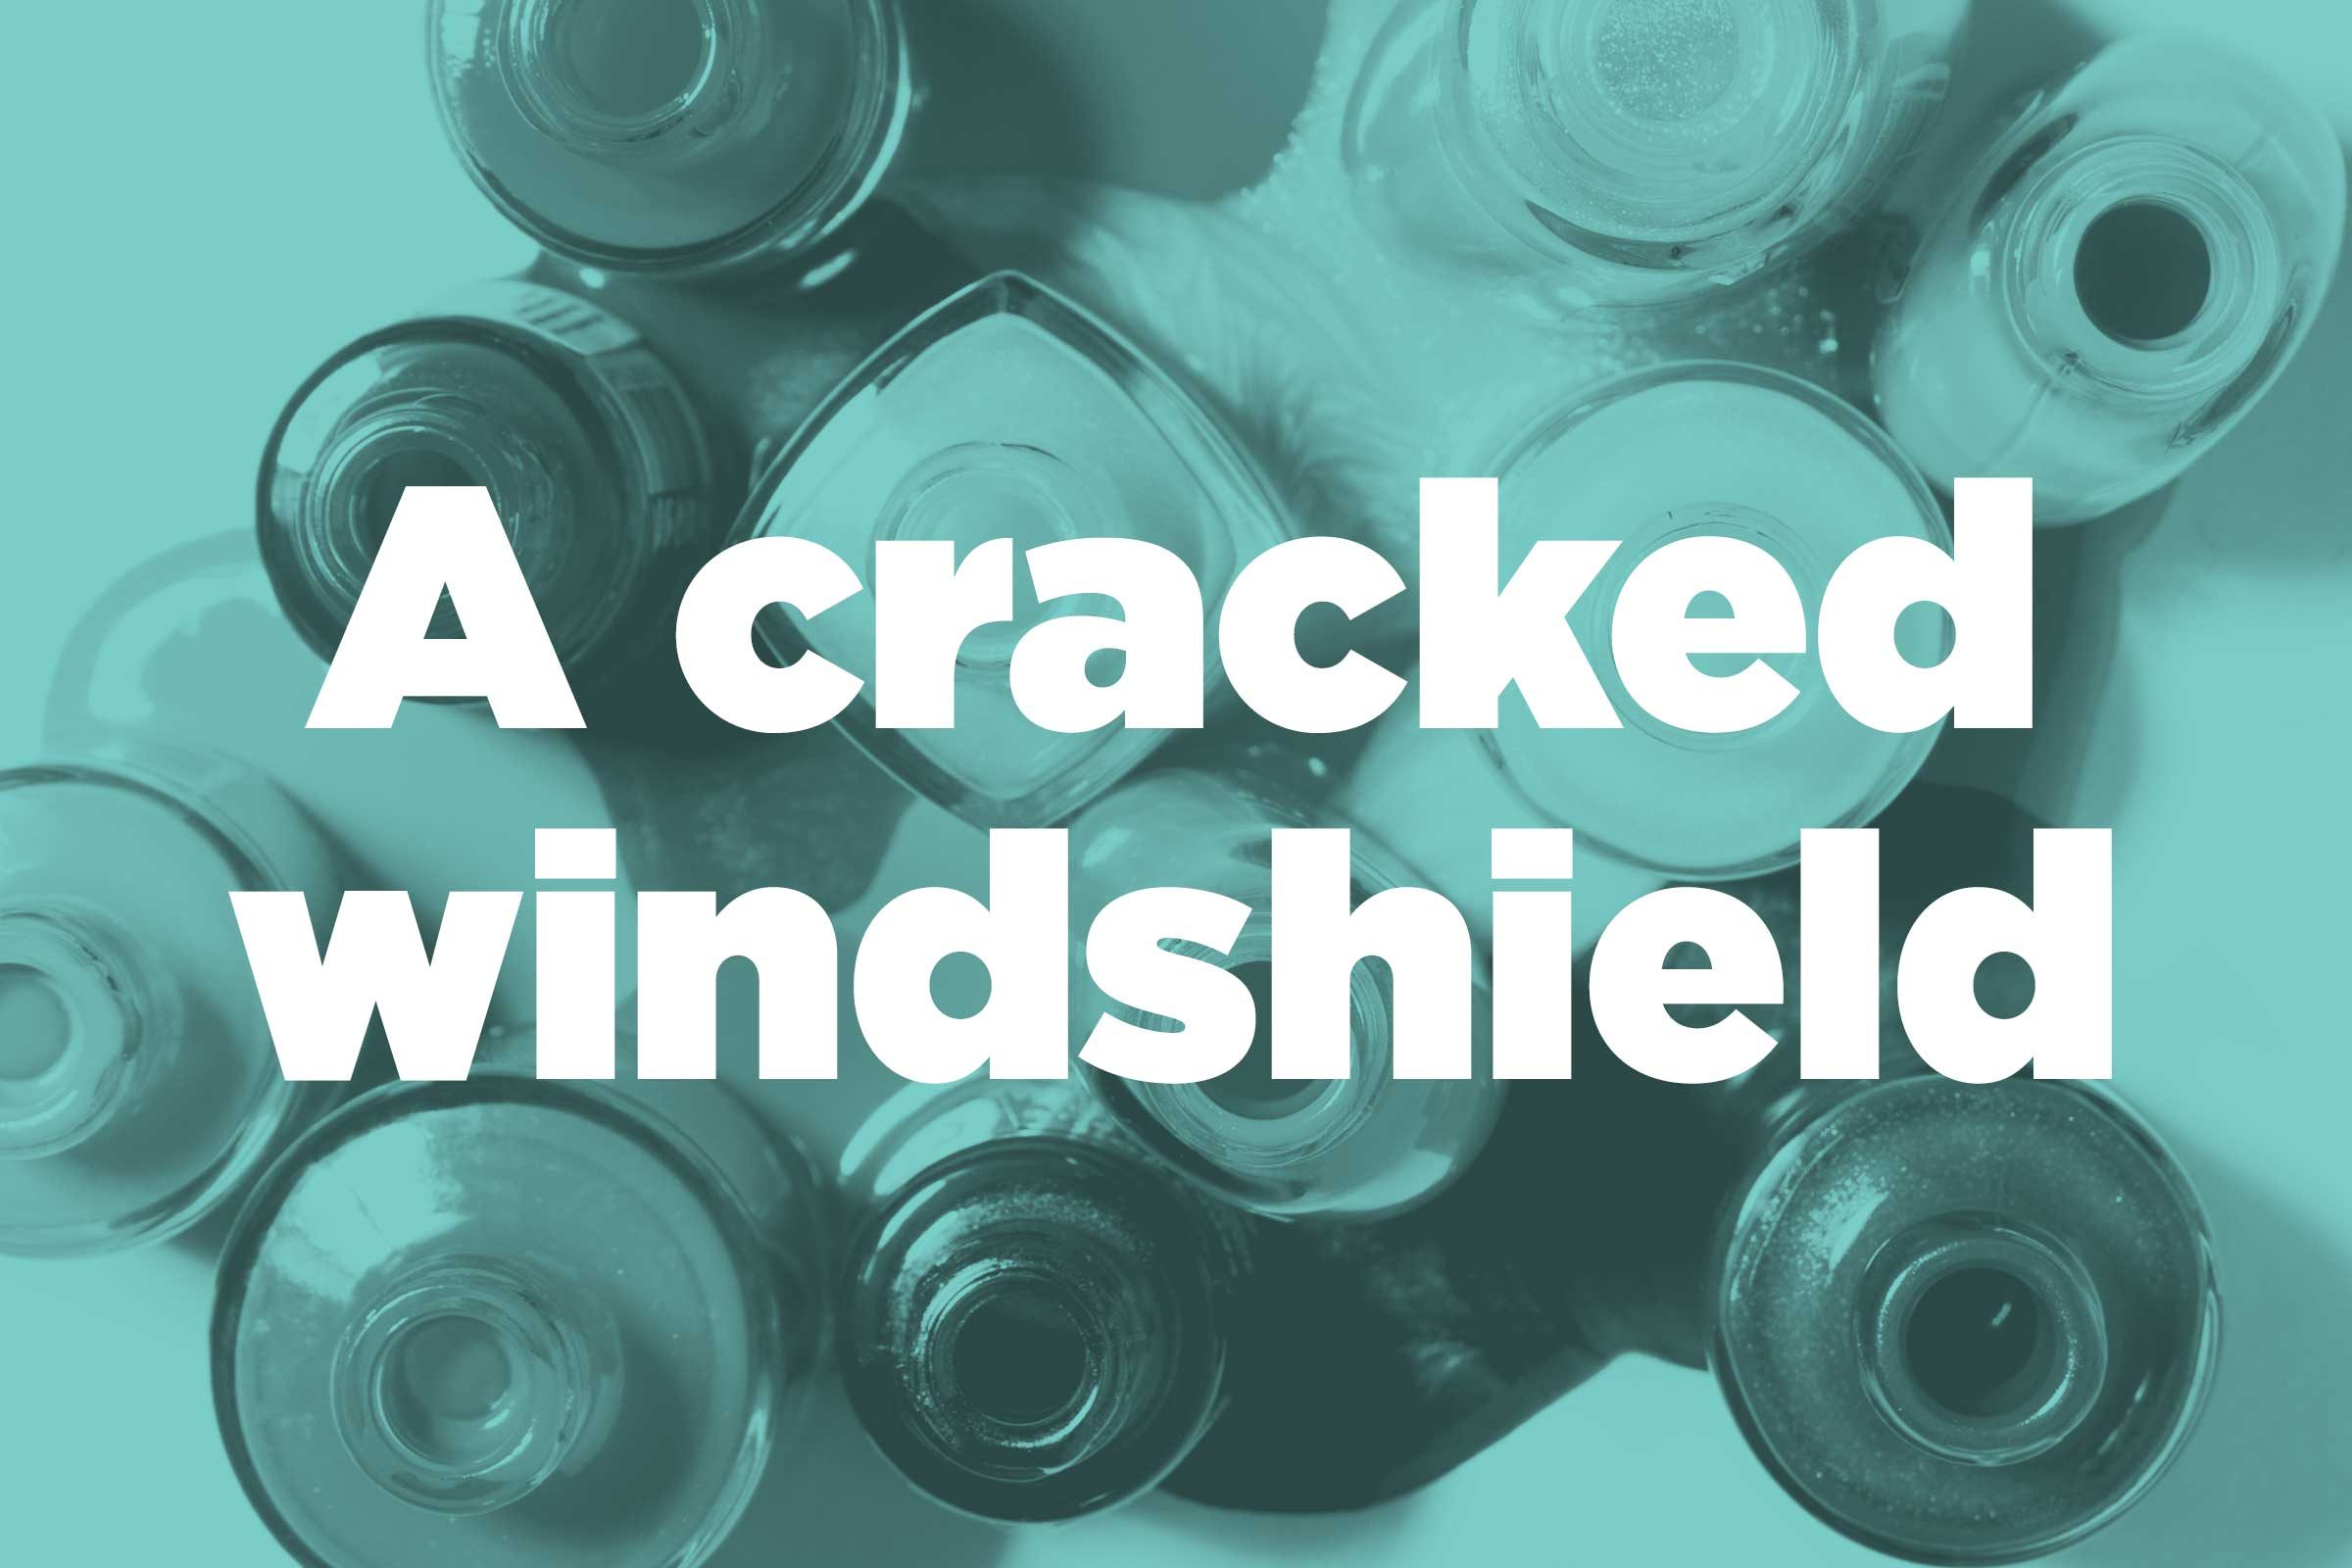 Stop a cracked windshield from getting worse